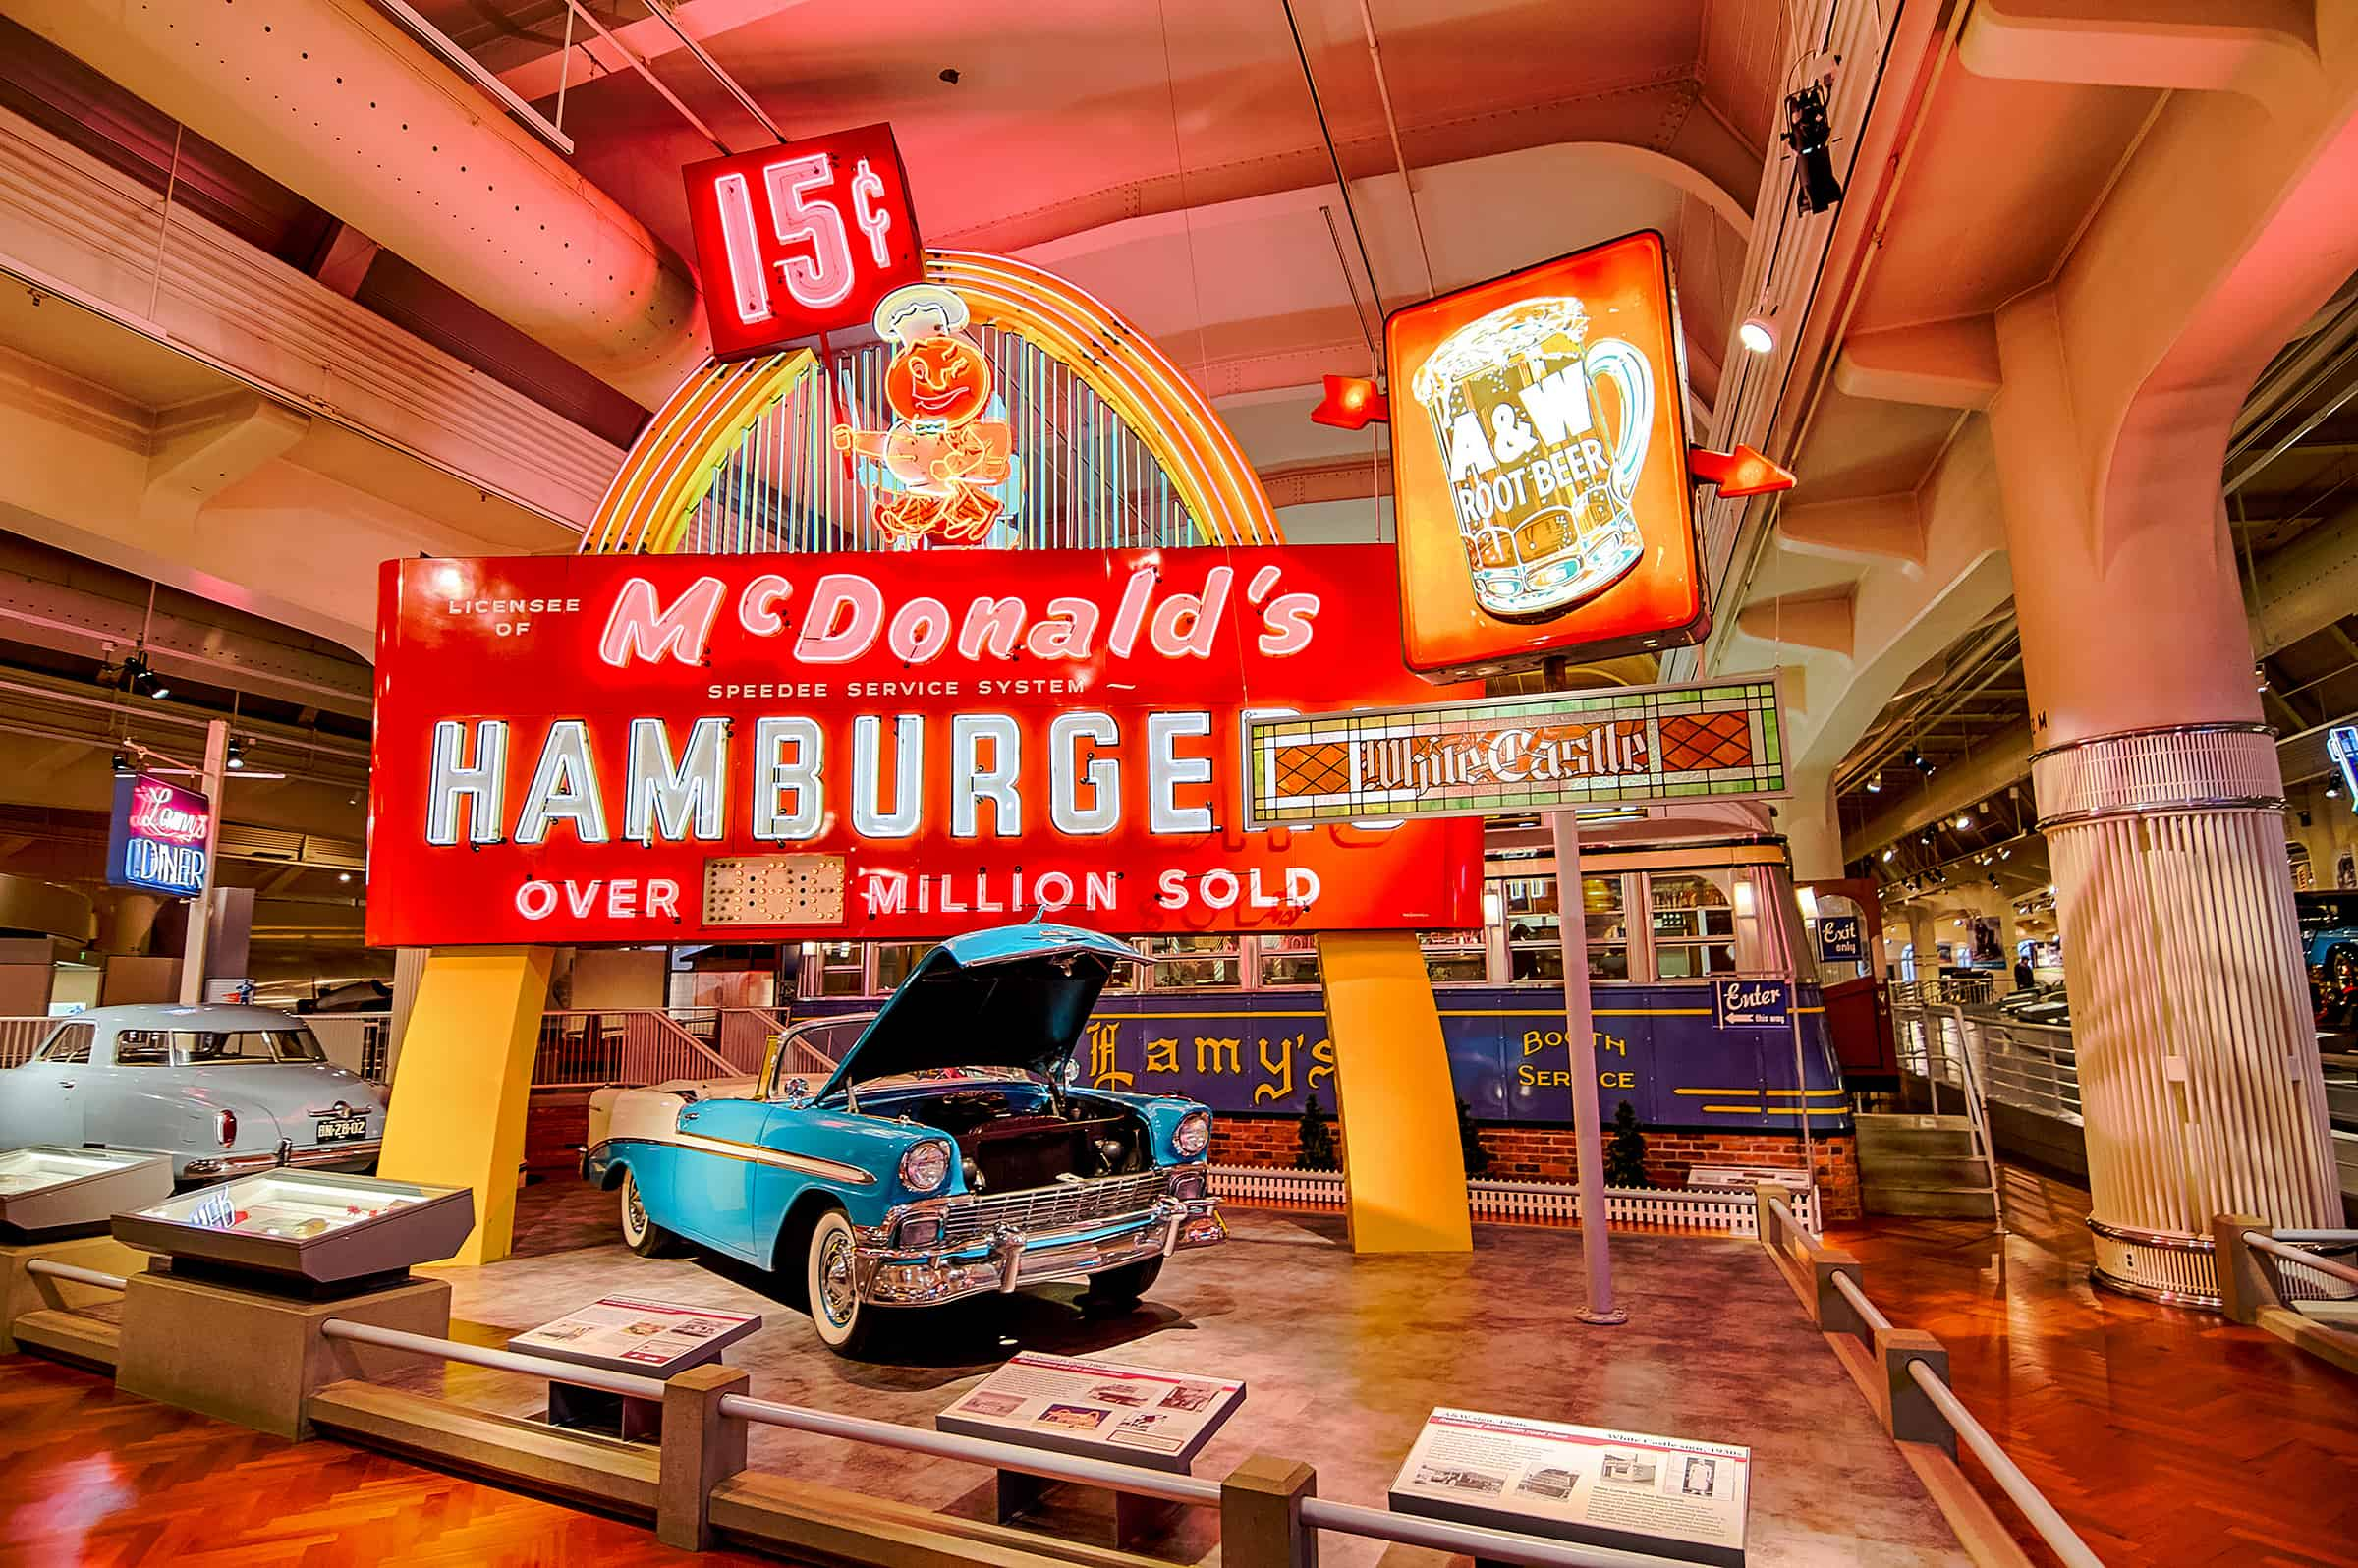 Henry Ford museum and McDonald's Hamburger sign